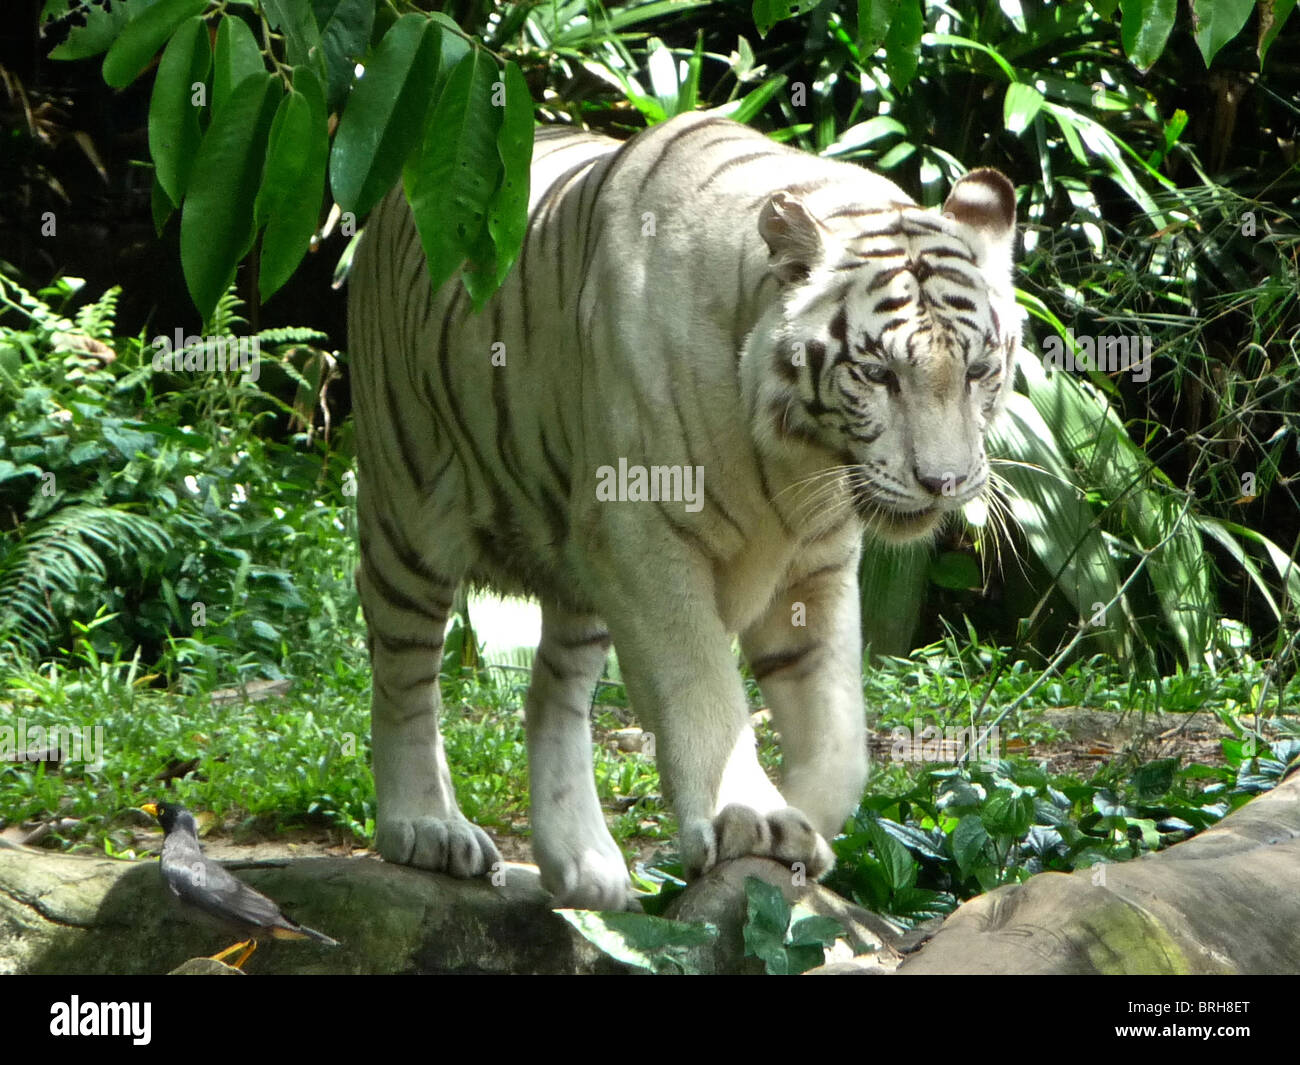 A rare white tiger photographed in Malaysia - Stock Image